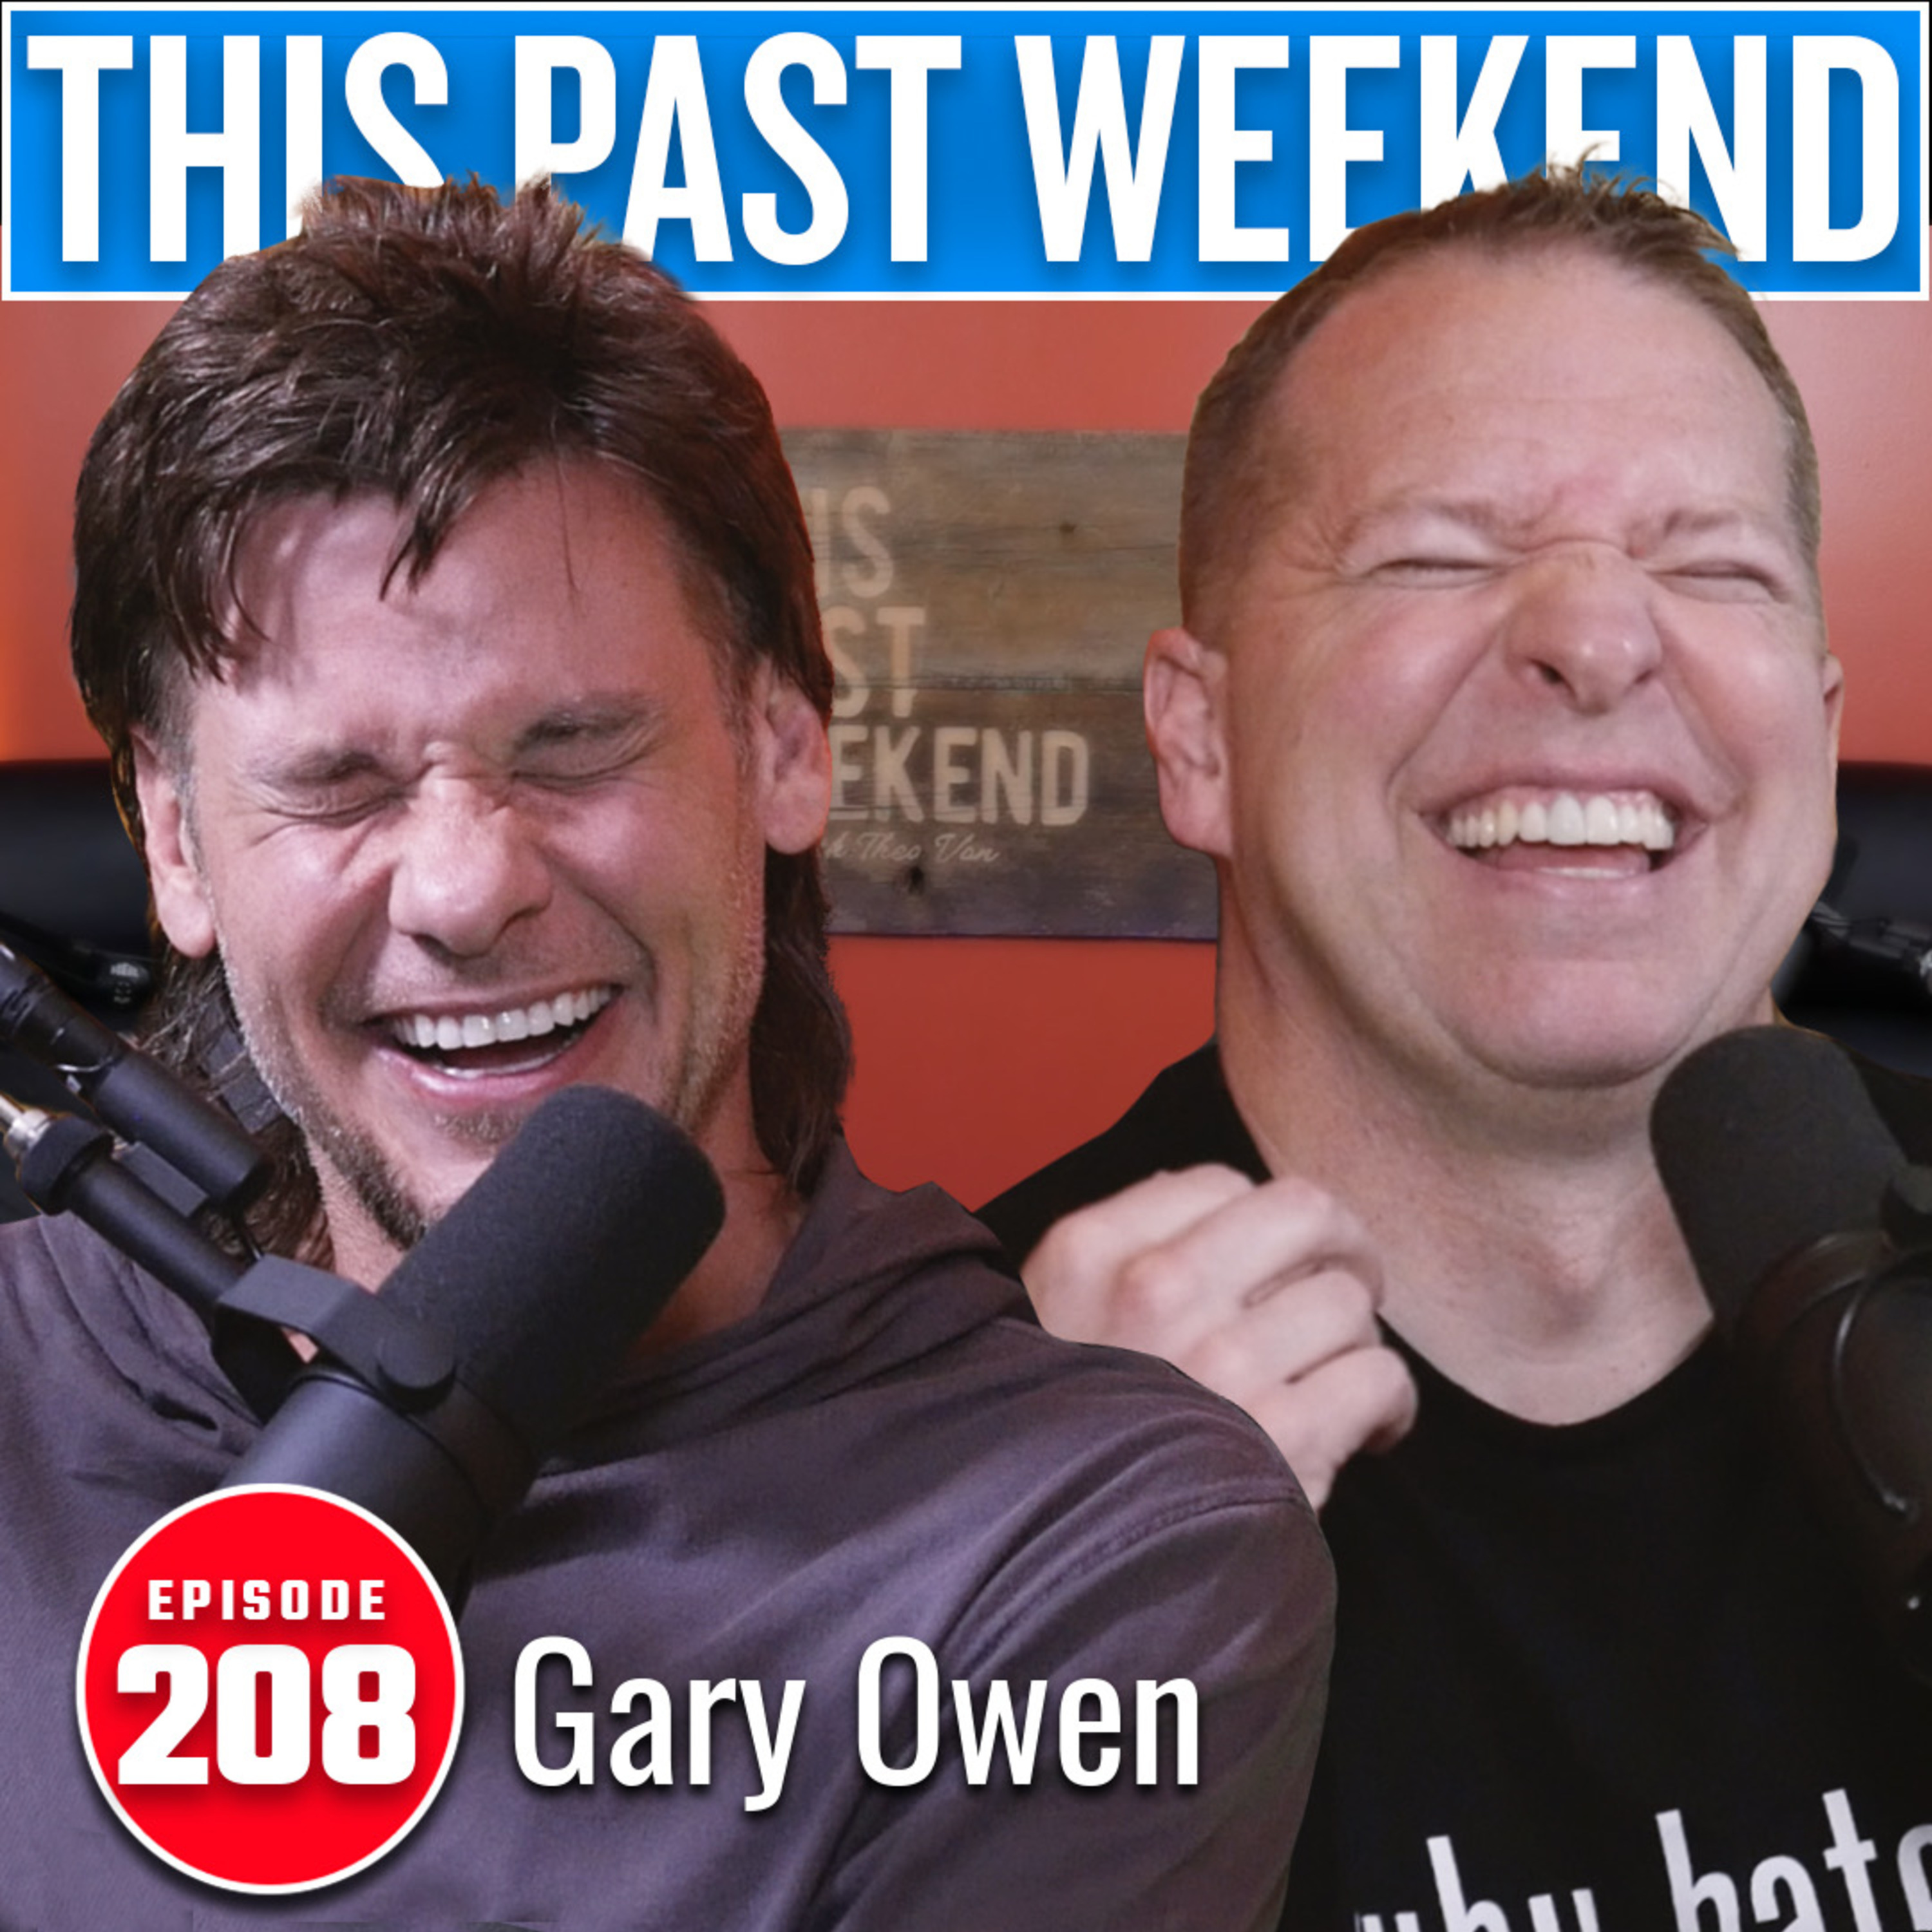 Gary Owen | This Past Weekend #208